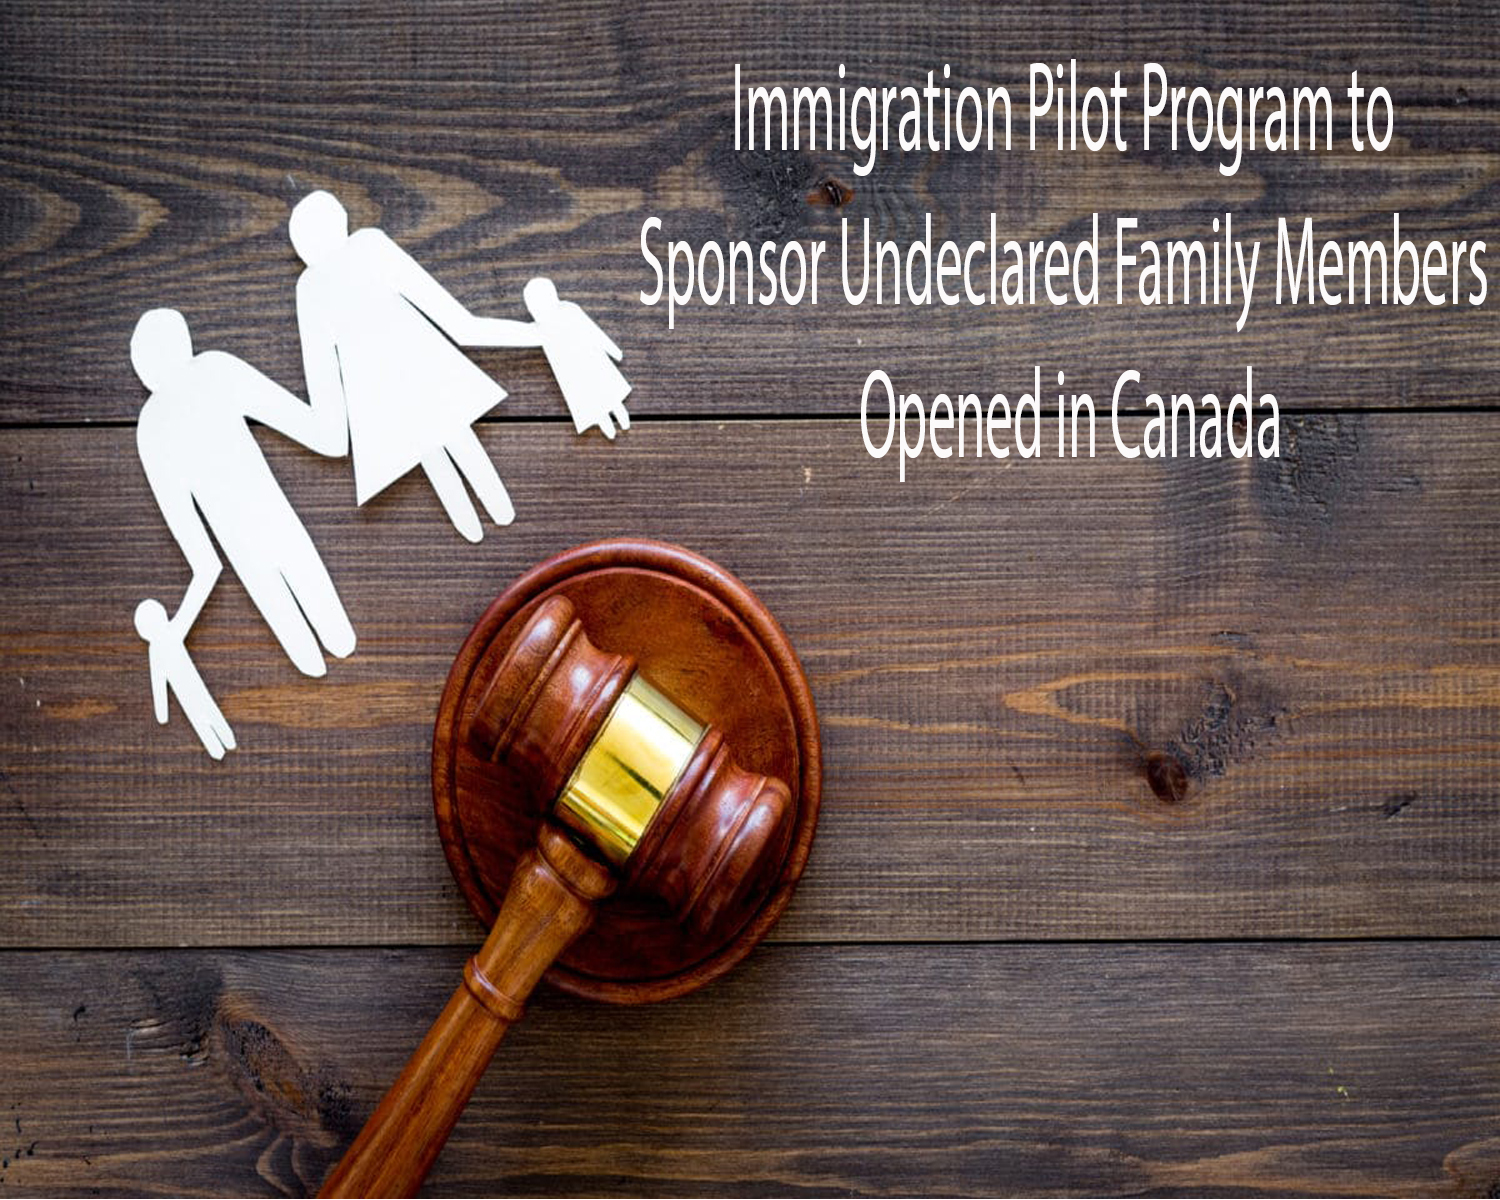 ponsor Undeclared Family Members Opened in Canada